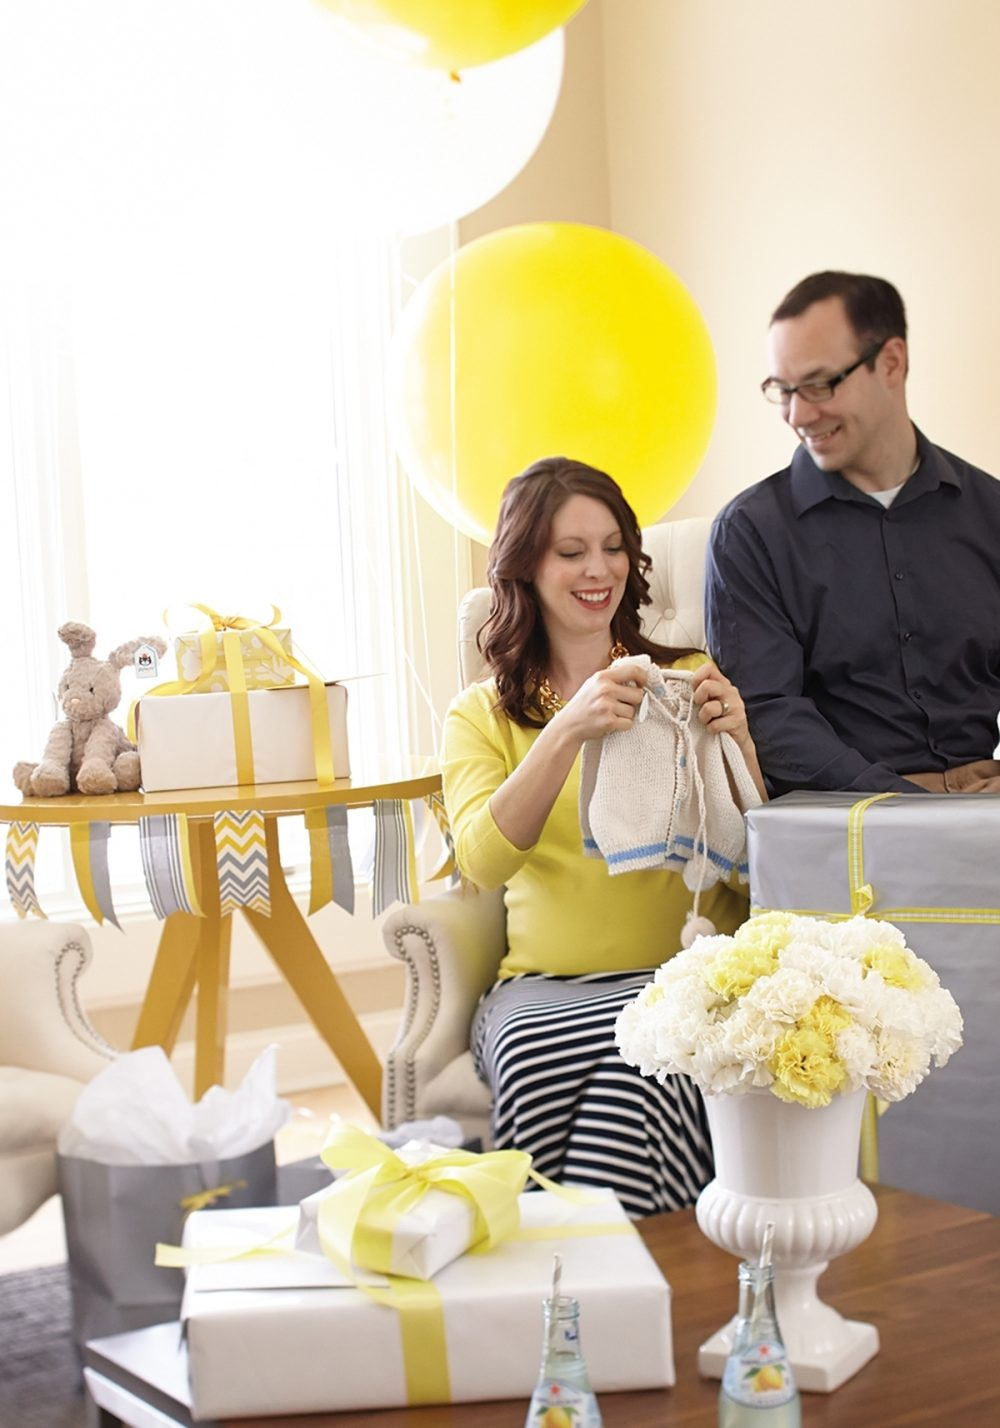 A husband and wife unwrap a sweater at a co-ed baby shower